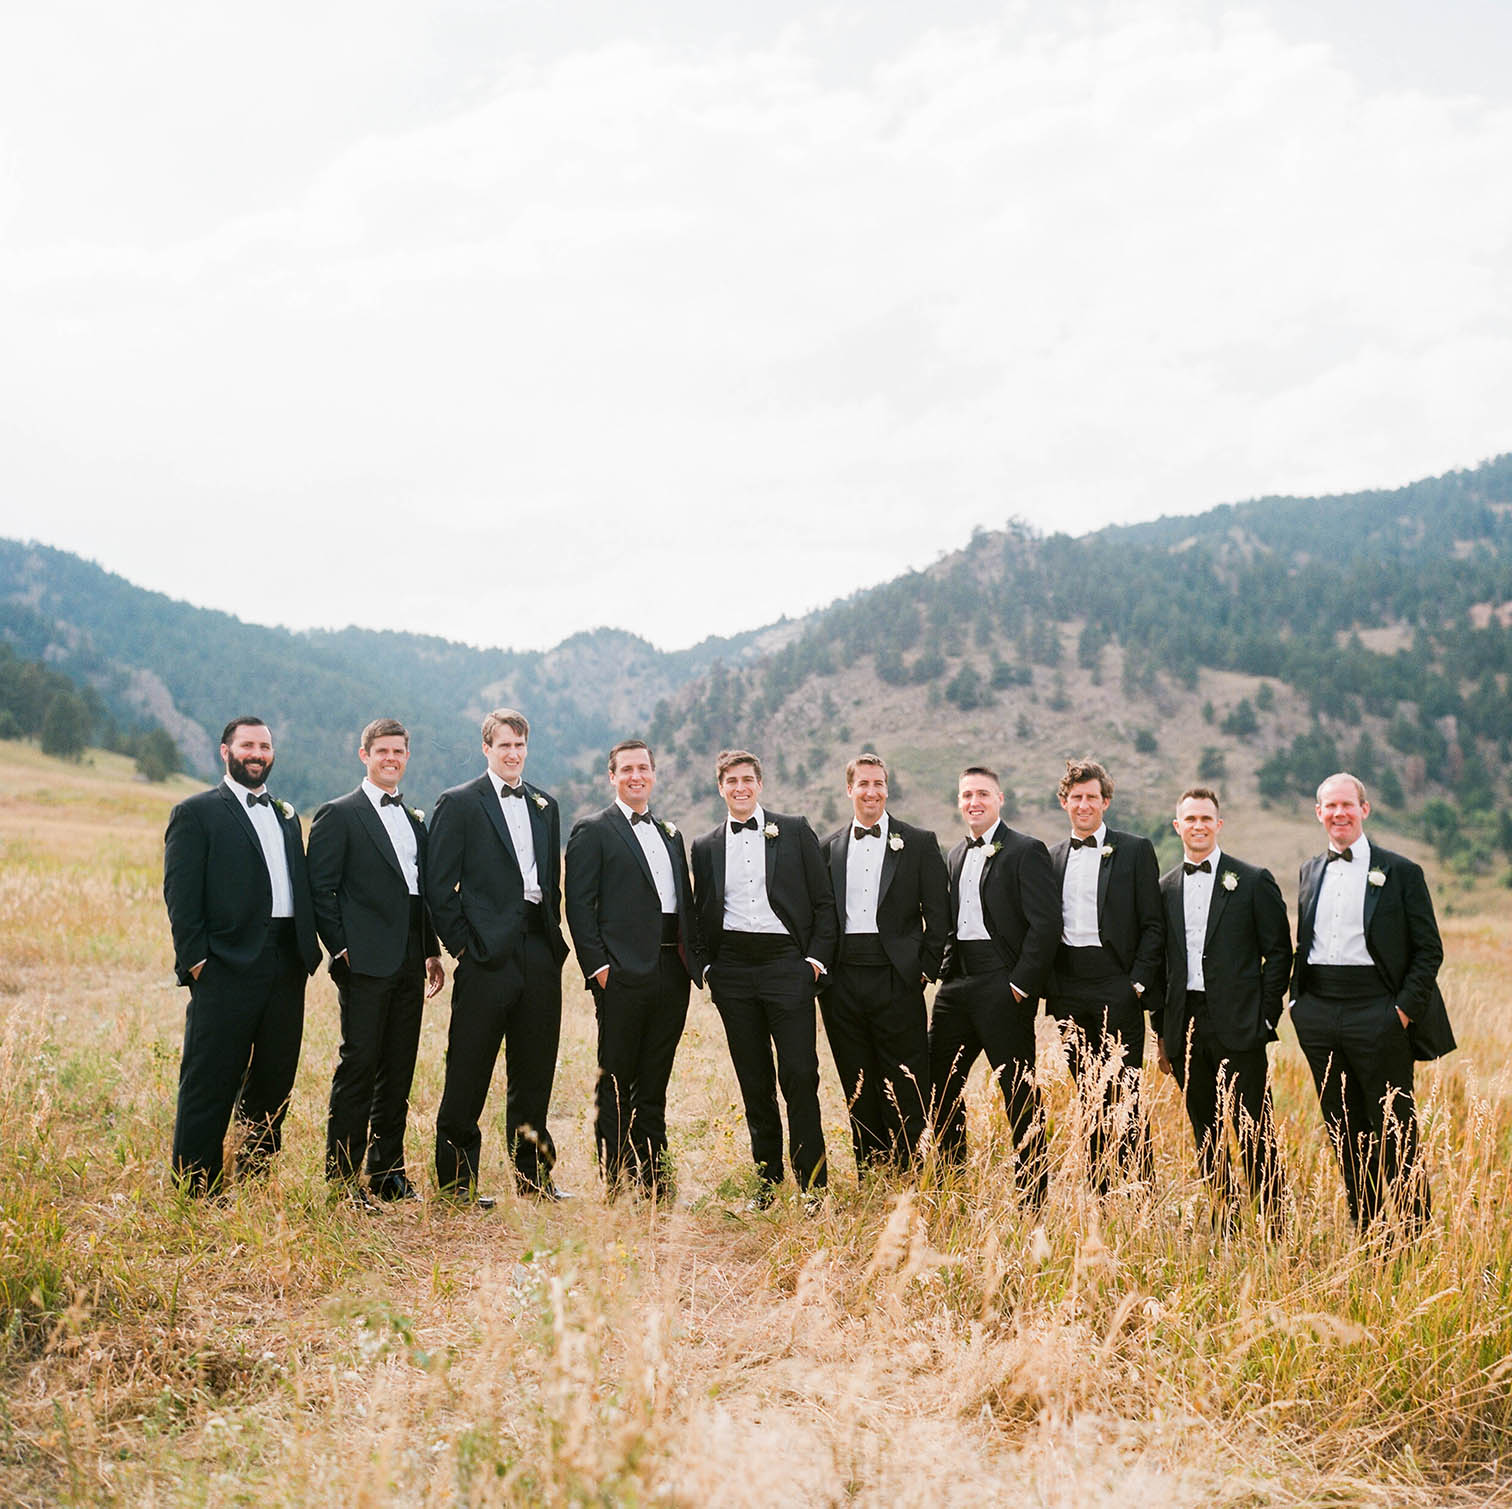 Boulder Weddings, Colorado Wedding Photographers, Denver Wedding Photographers, Film Photographers, Rolleiflex Camera, Colorado Weddings, Danielle DeFiore Photography, Denver Weddings, Boulder County Club Weddings, Classic Weddings In Colorado, Black Tie Weddings, Country Club Weddings, Church Weddings In Colorado, Best Wedding Photographers In Colorado, Chautauqua Park, Groom with Groomsmen